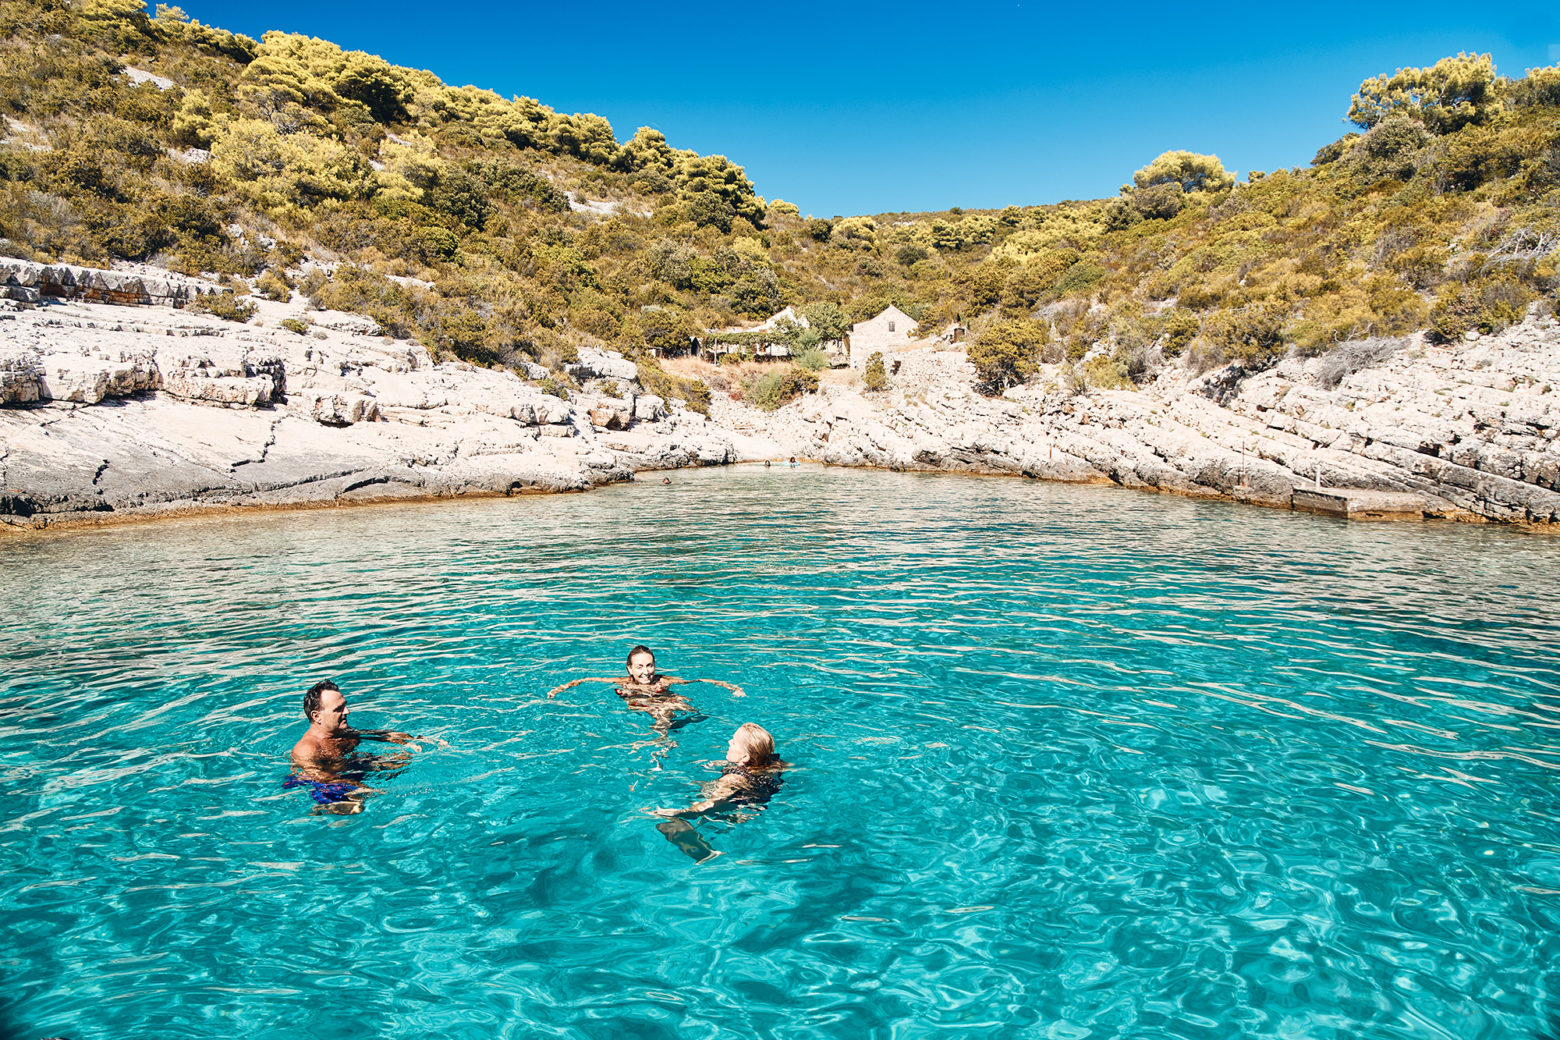 The water in Croatia is mind-blowing. Paul Williams, BB, Ness Rowe